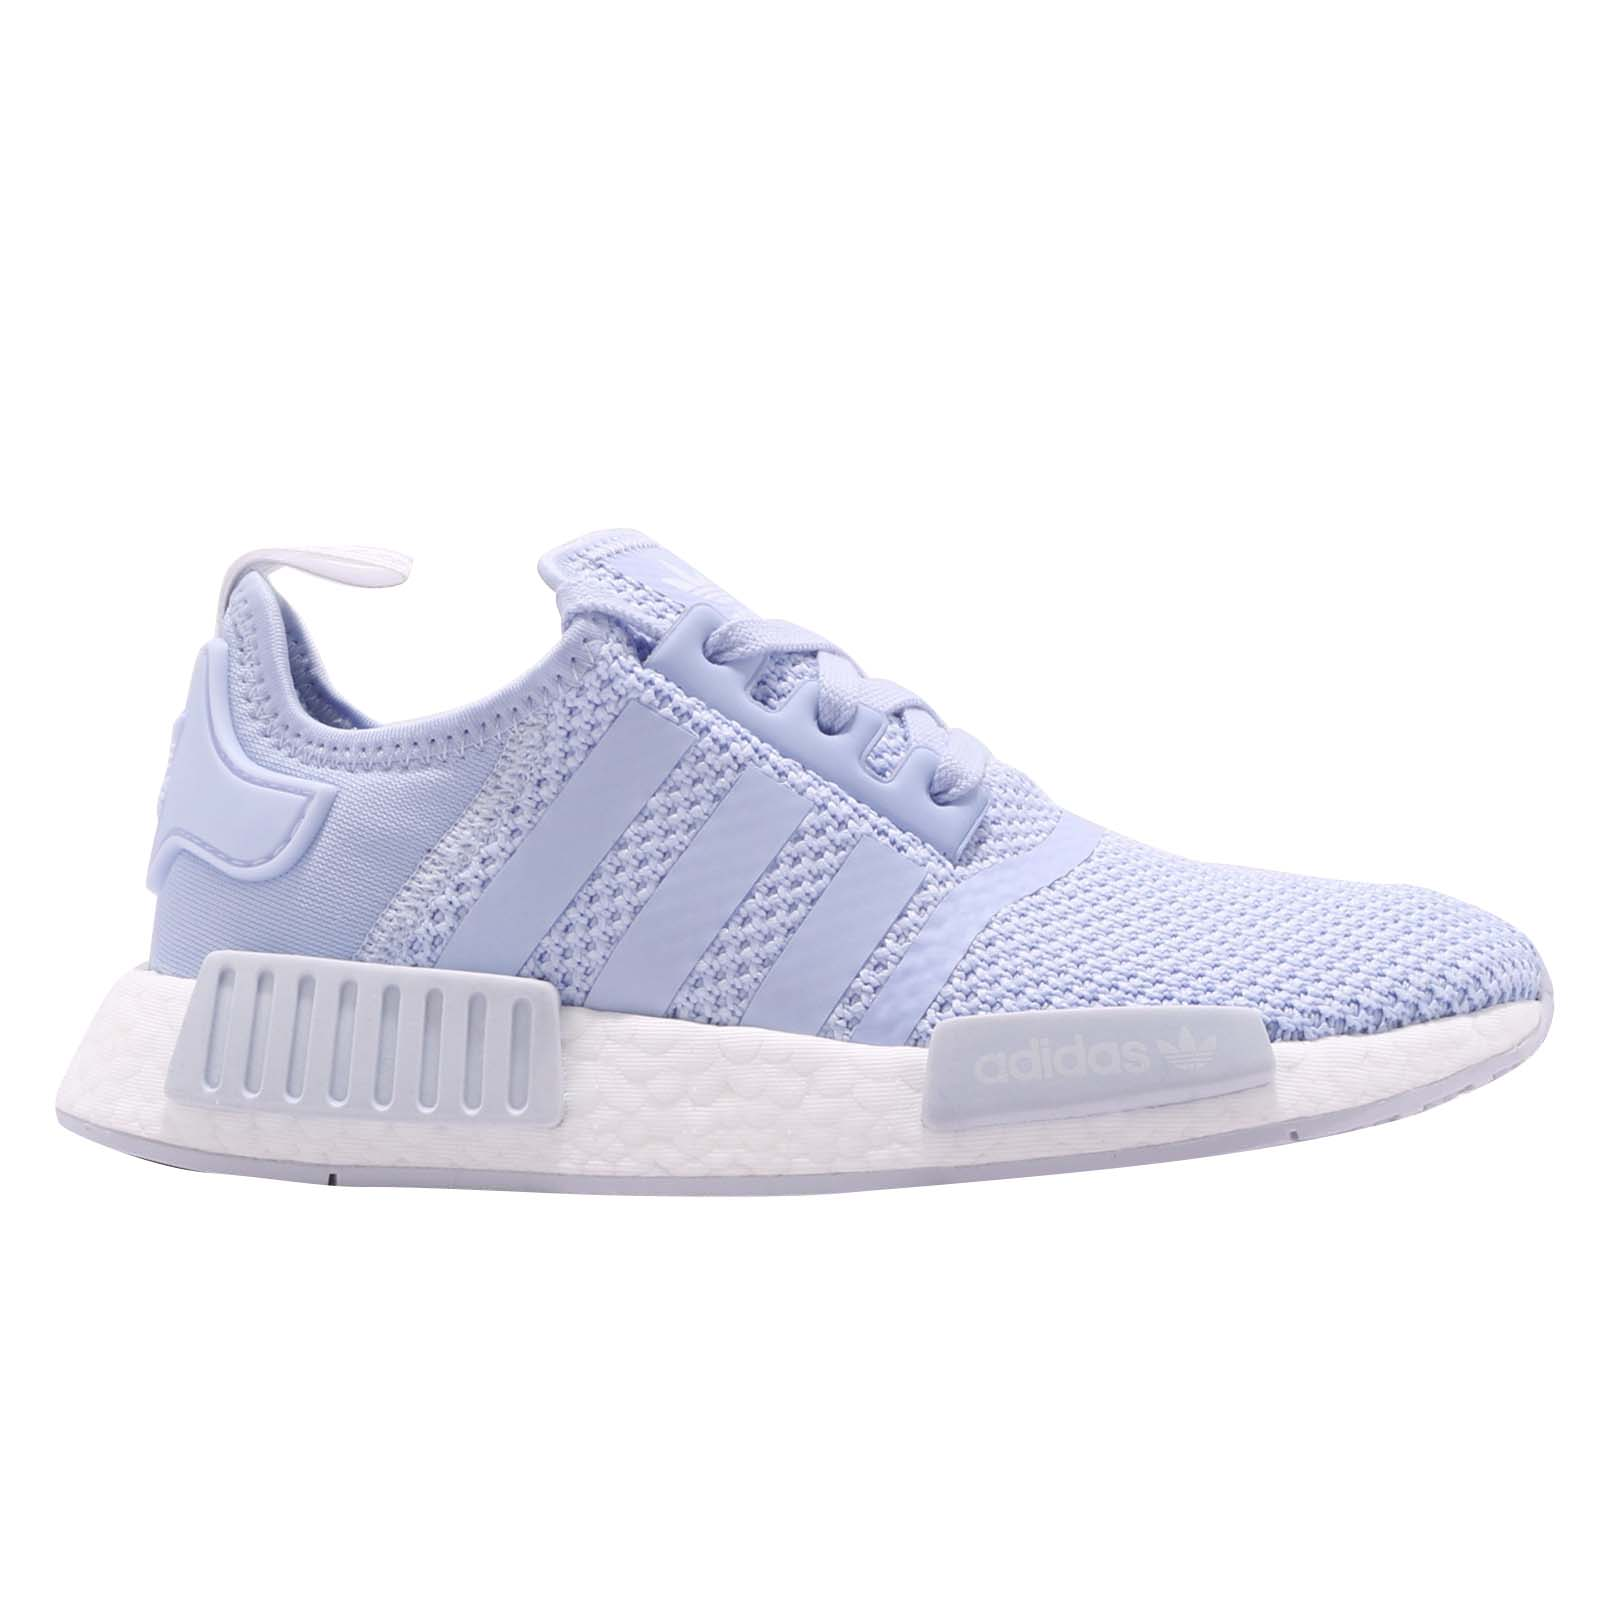 5810e69ab adidas Originals NMD R1 W Aero Blue White Women Running Shoes ...